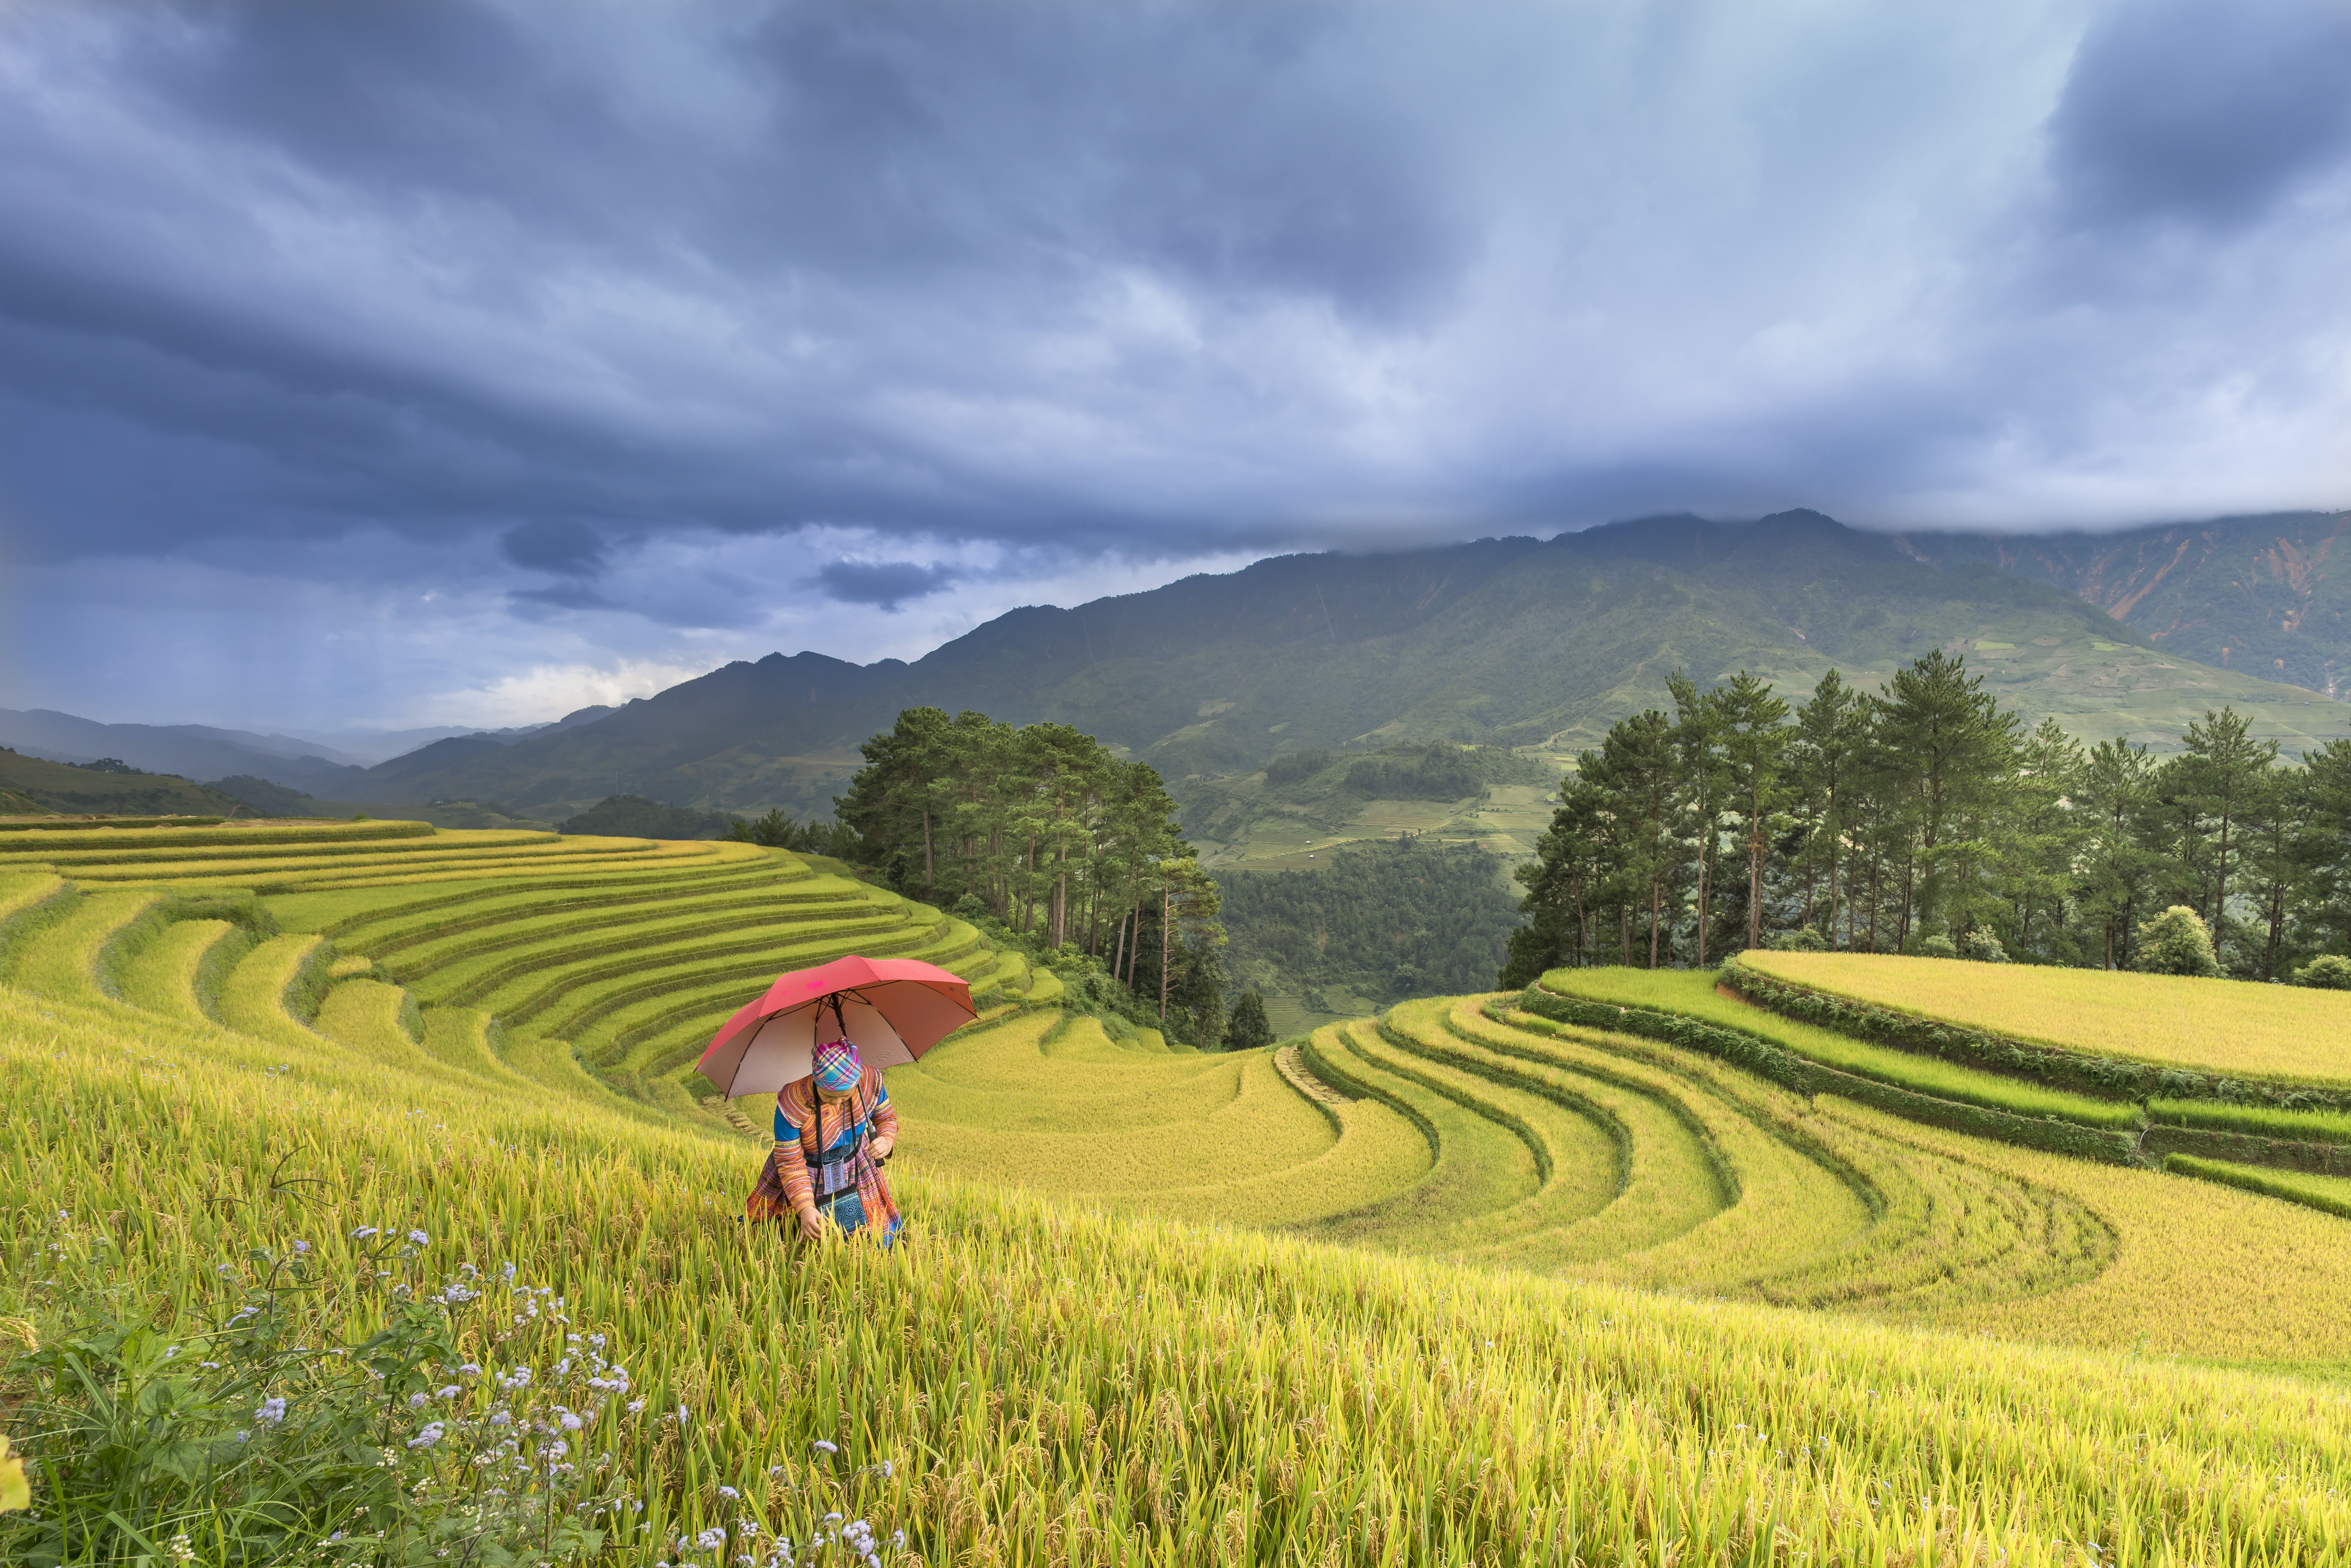 Person Using Red Umbrella Standing On Rice Terraces